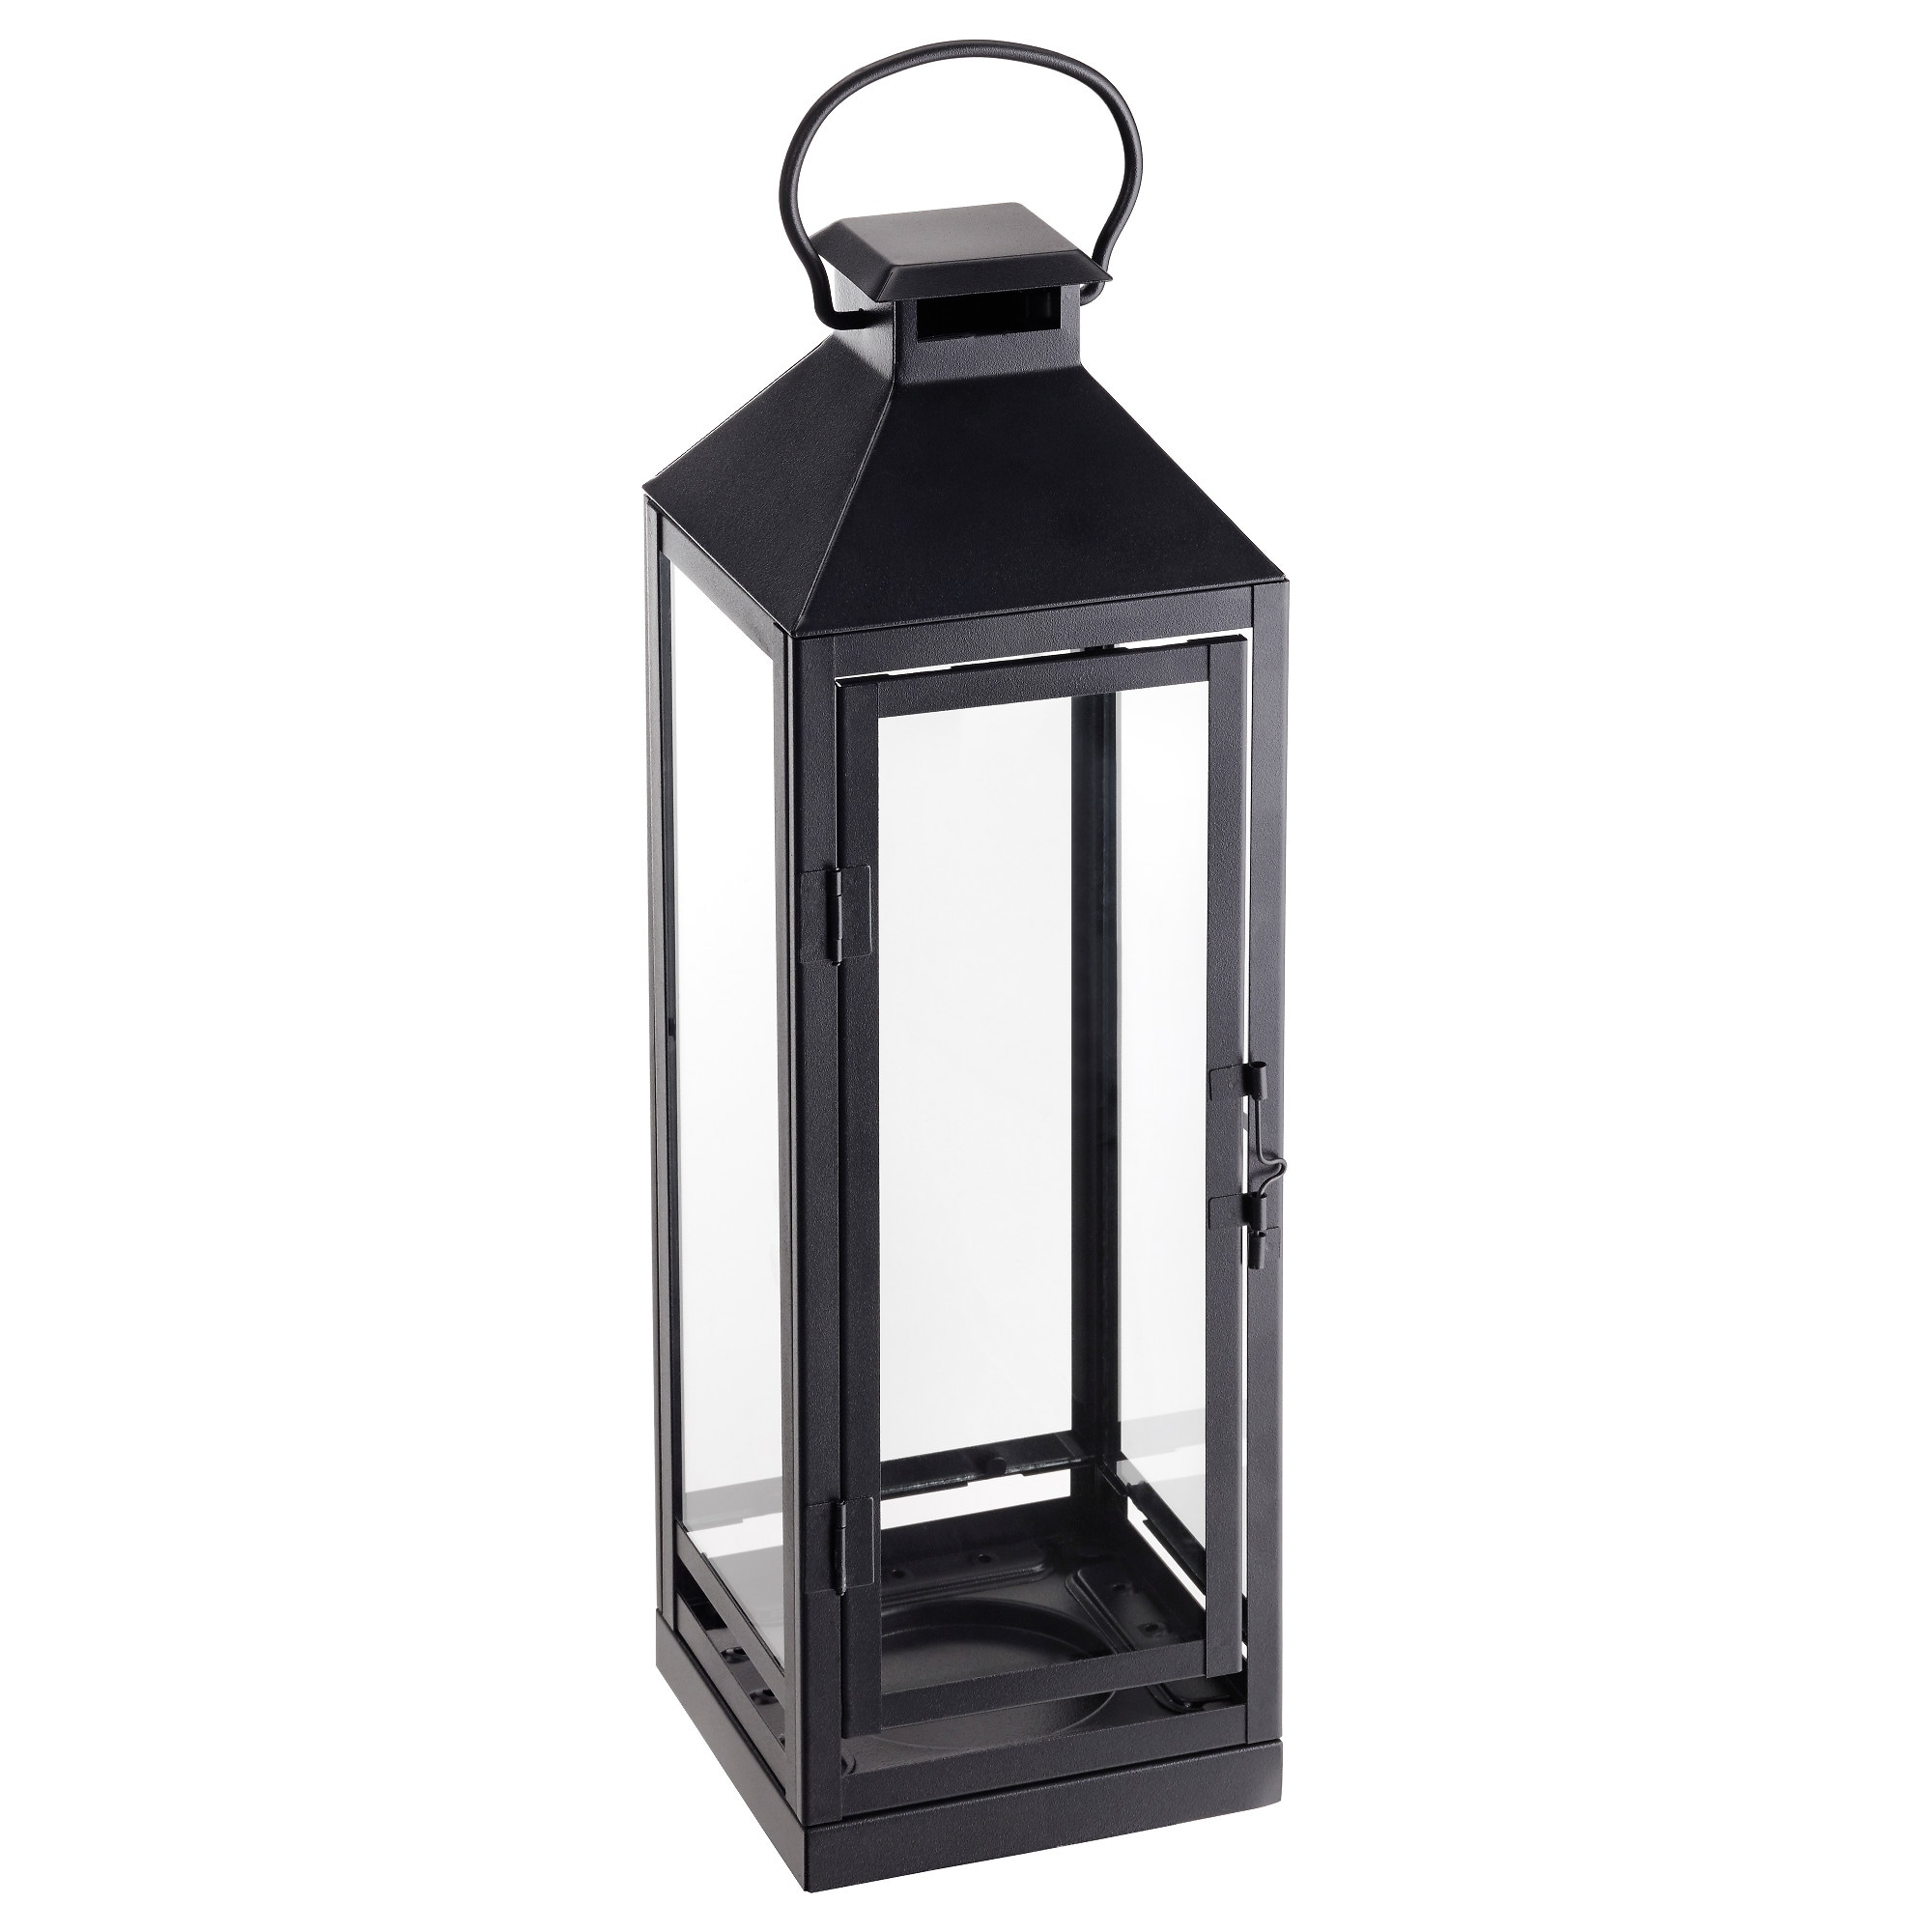 2019 Lanterns & Candle Lanterns – Ikea Throughout Outdoor Glass Lanterns (Gallery 11 of 20)